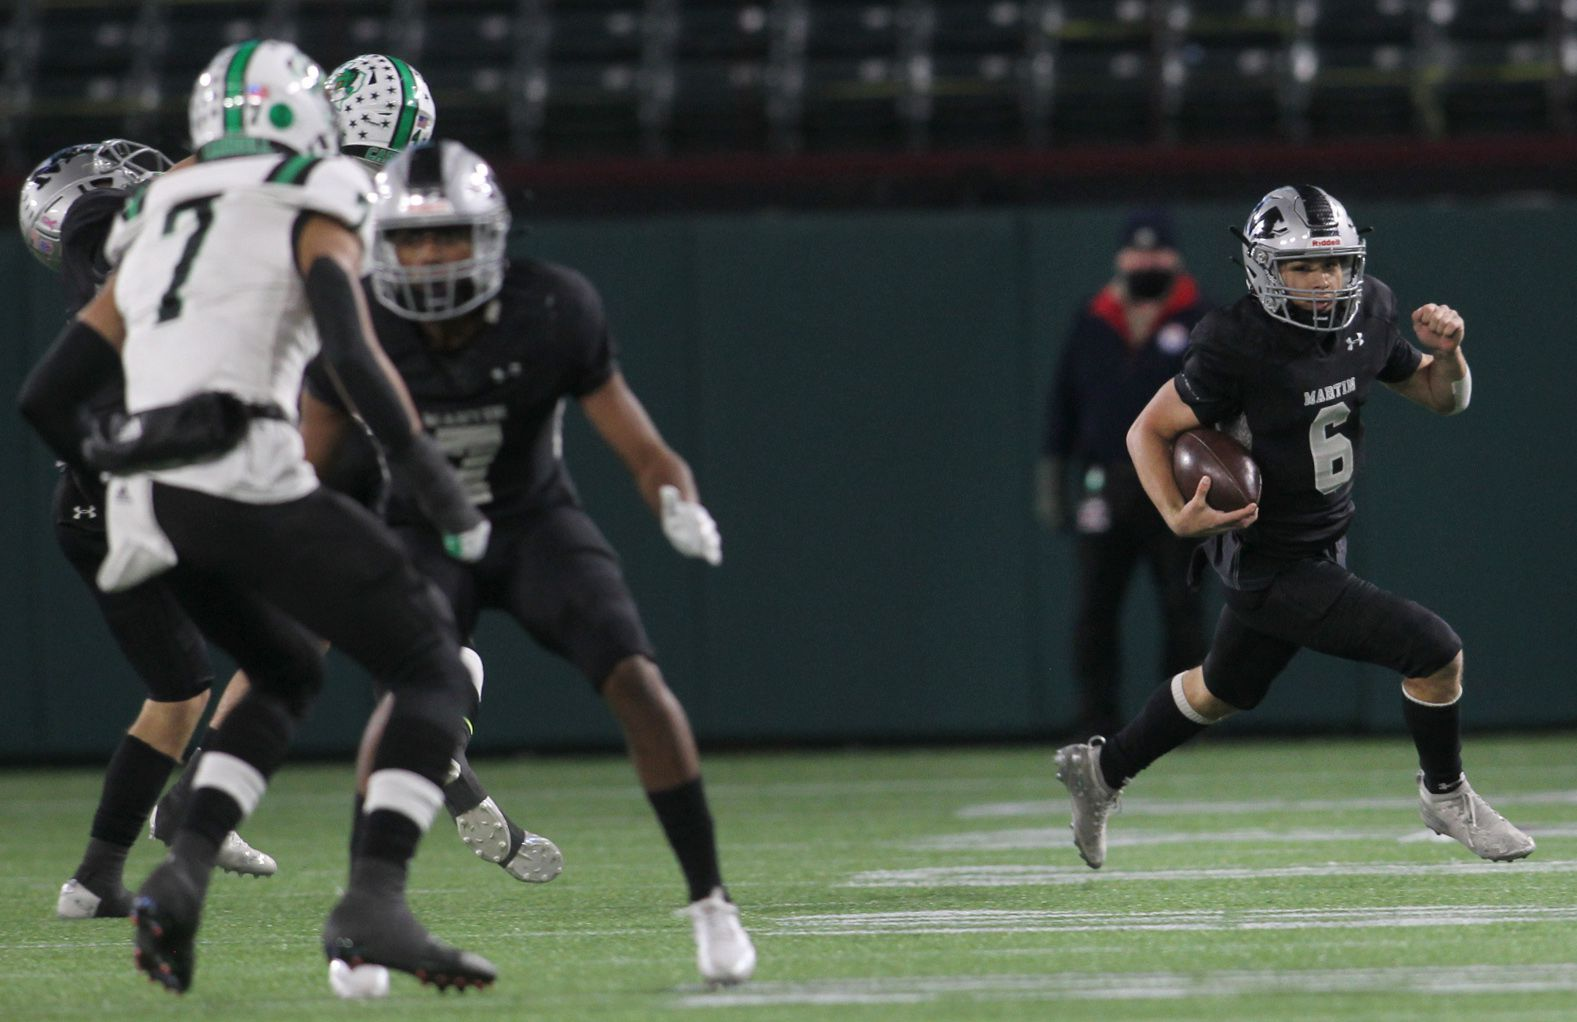 Arlington Martin quarterback Zach Mundell (6) scampers out of the backfield for a big rushing gain during first half action against Southlake. The two teams played their Class 6A Division l Region l semifinal football playoff game held at Globe Life Park in Arlington on December 24, 2020. (Steve Hamm/ Special Contributor)